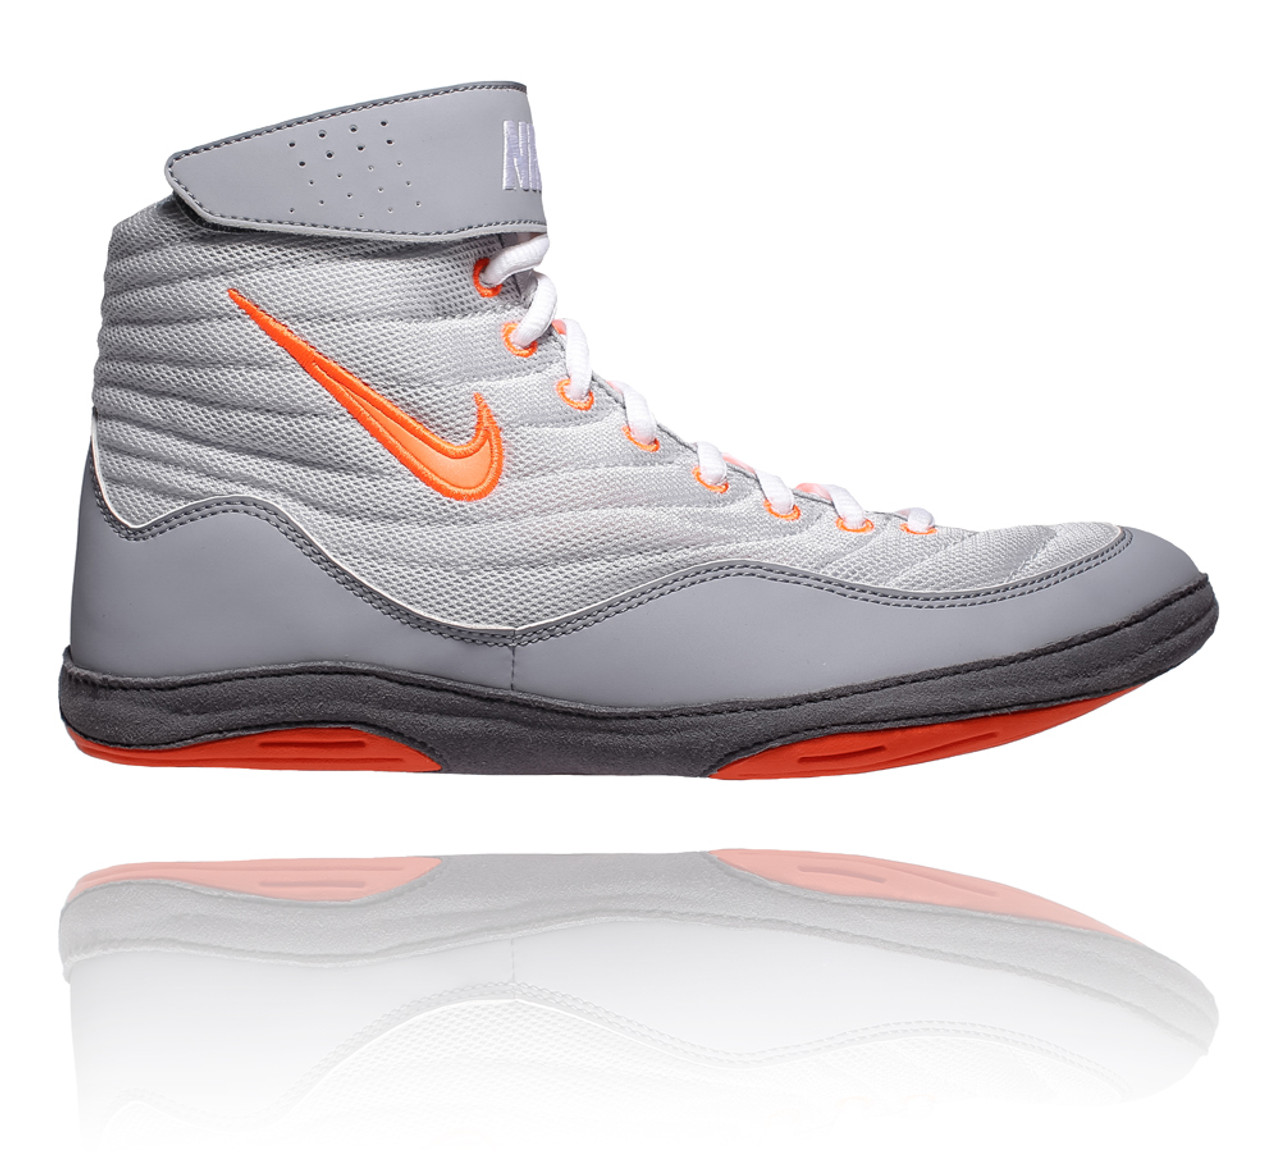 a4fe6b477d83 Nike Inflict 3 - Pure Plat Total Orange Stealth Dark Grey